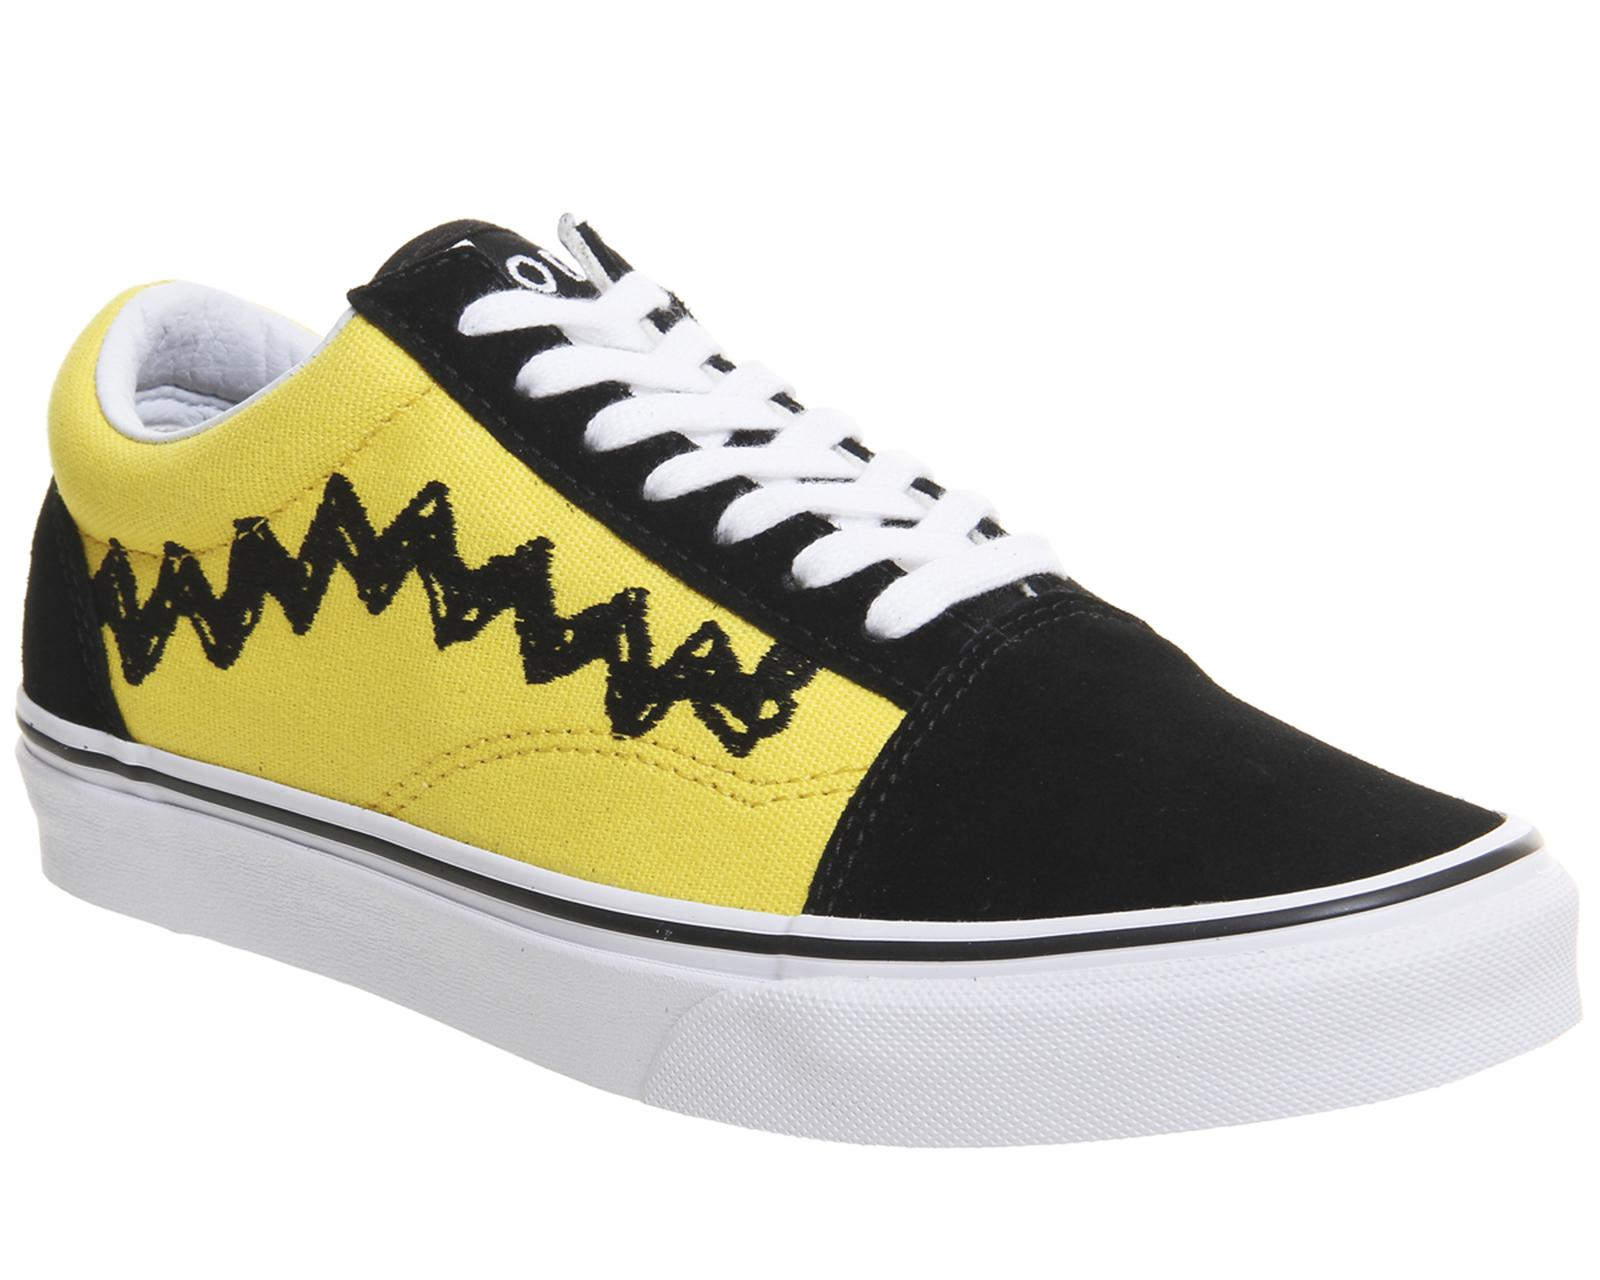 8a627793a6 Lyst - Vans Old Skool Trainers for Men